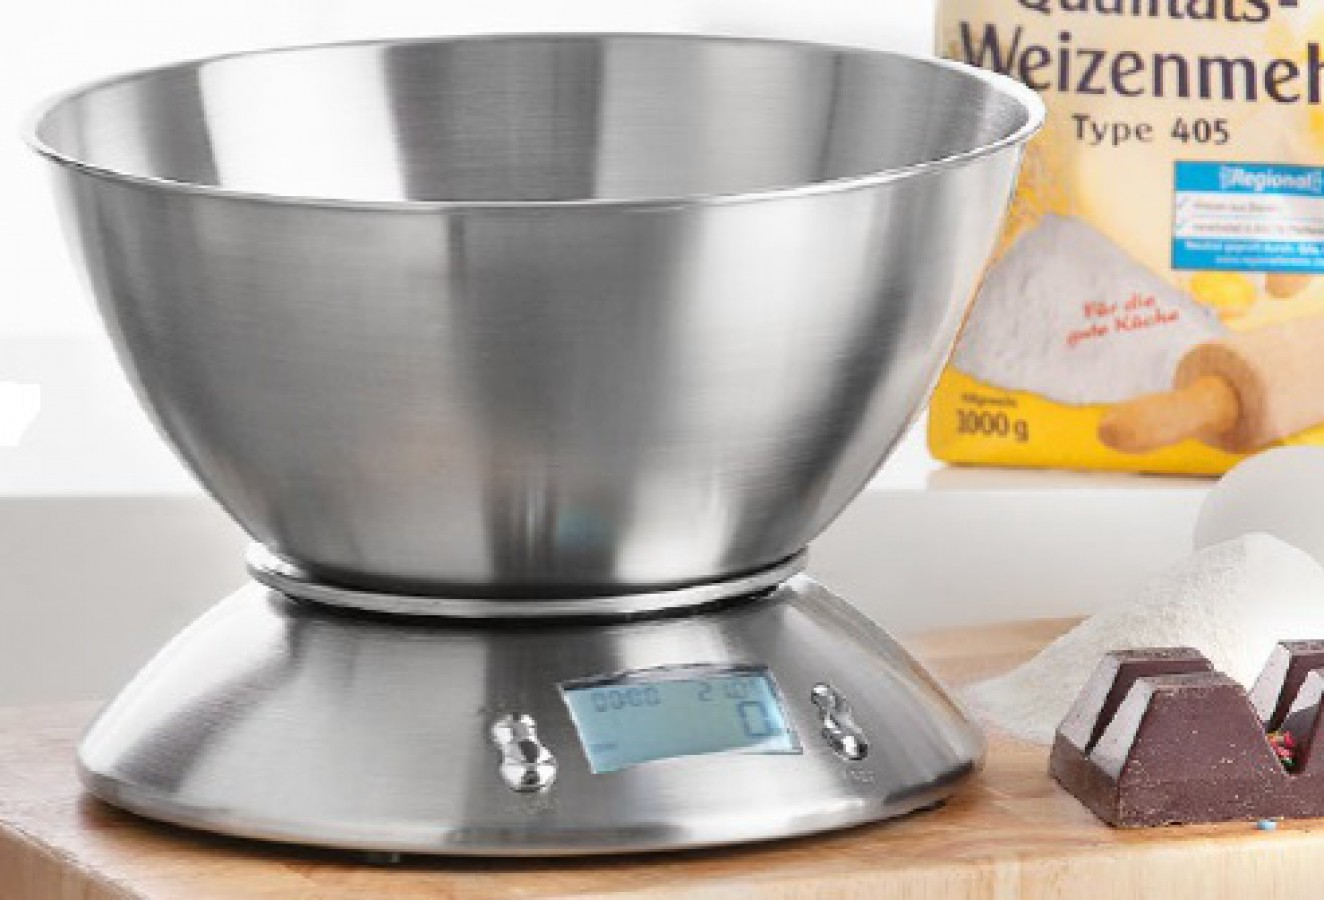 Kitchen scale with weighing pan